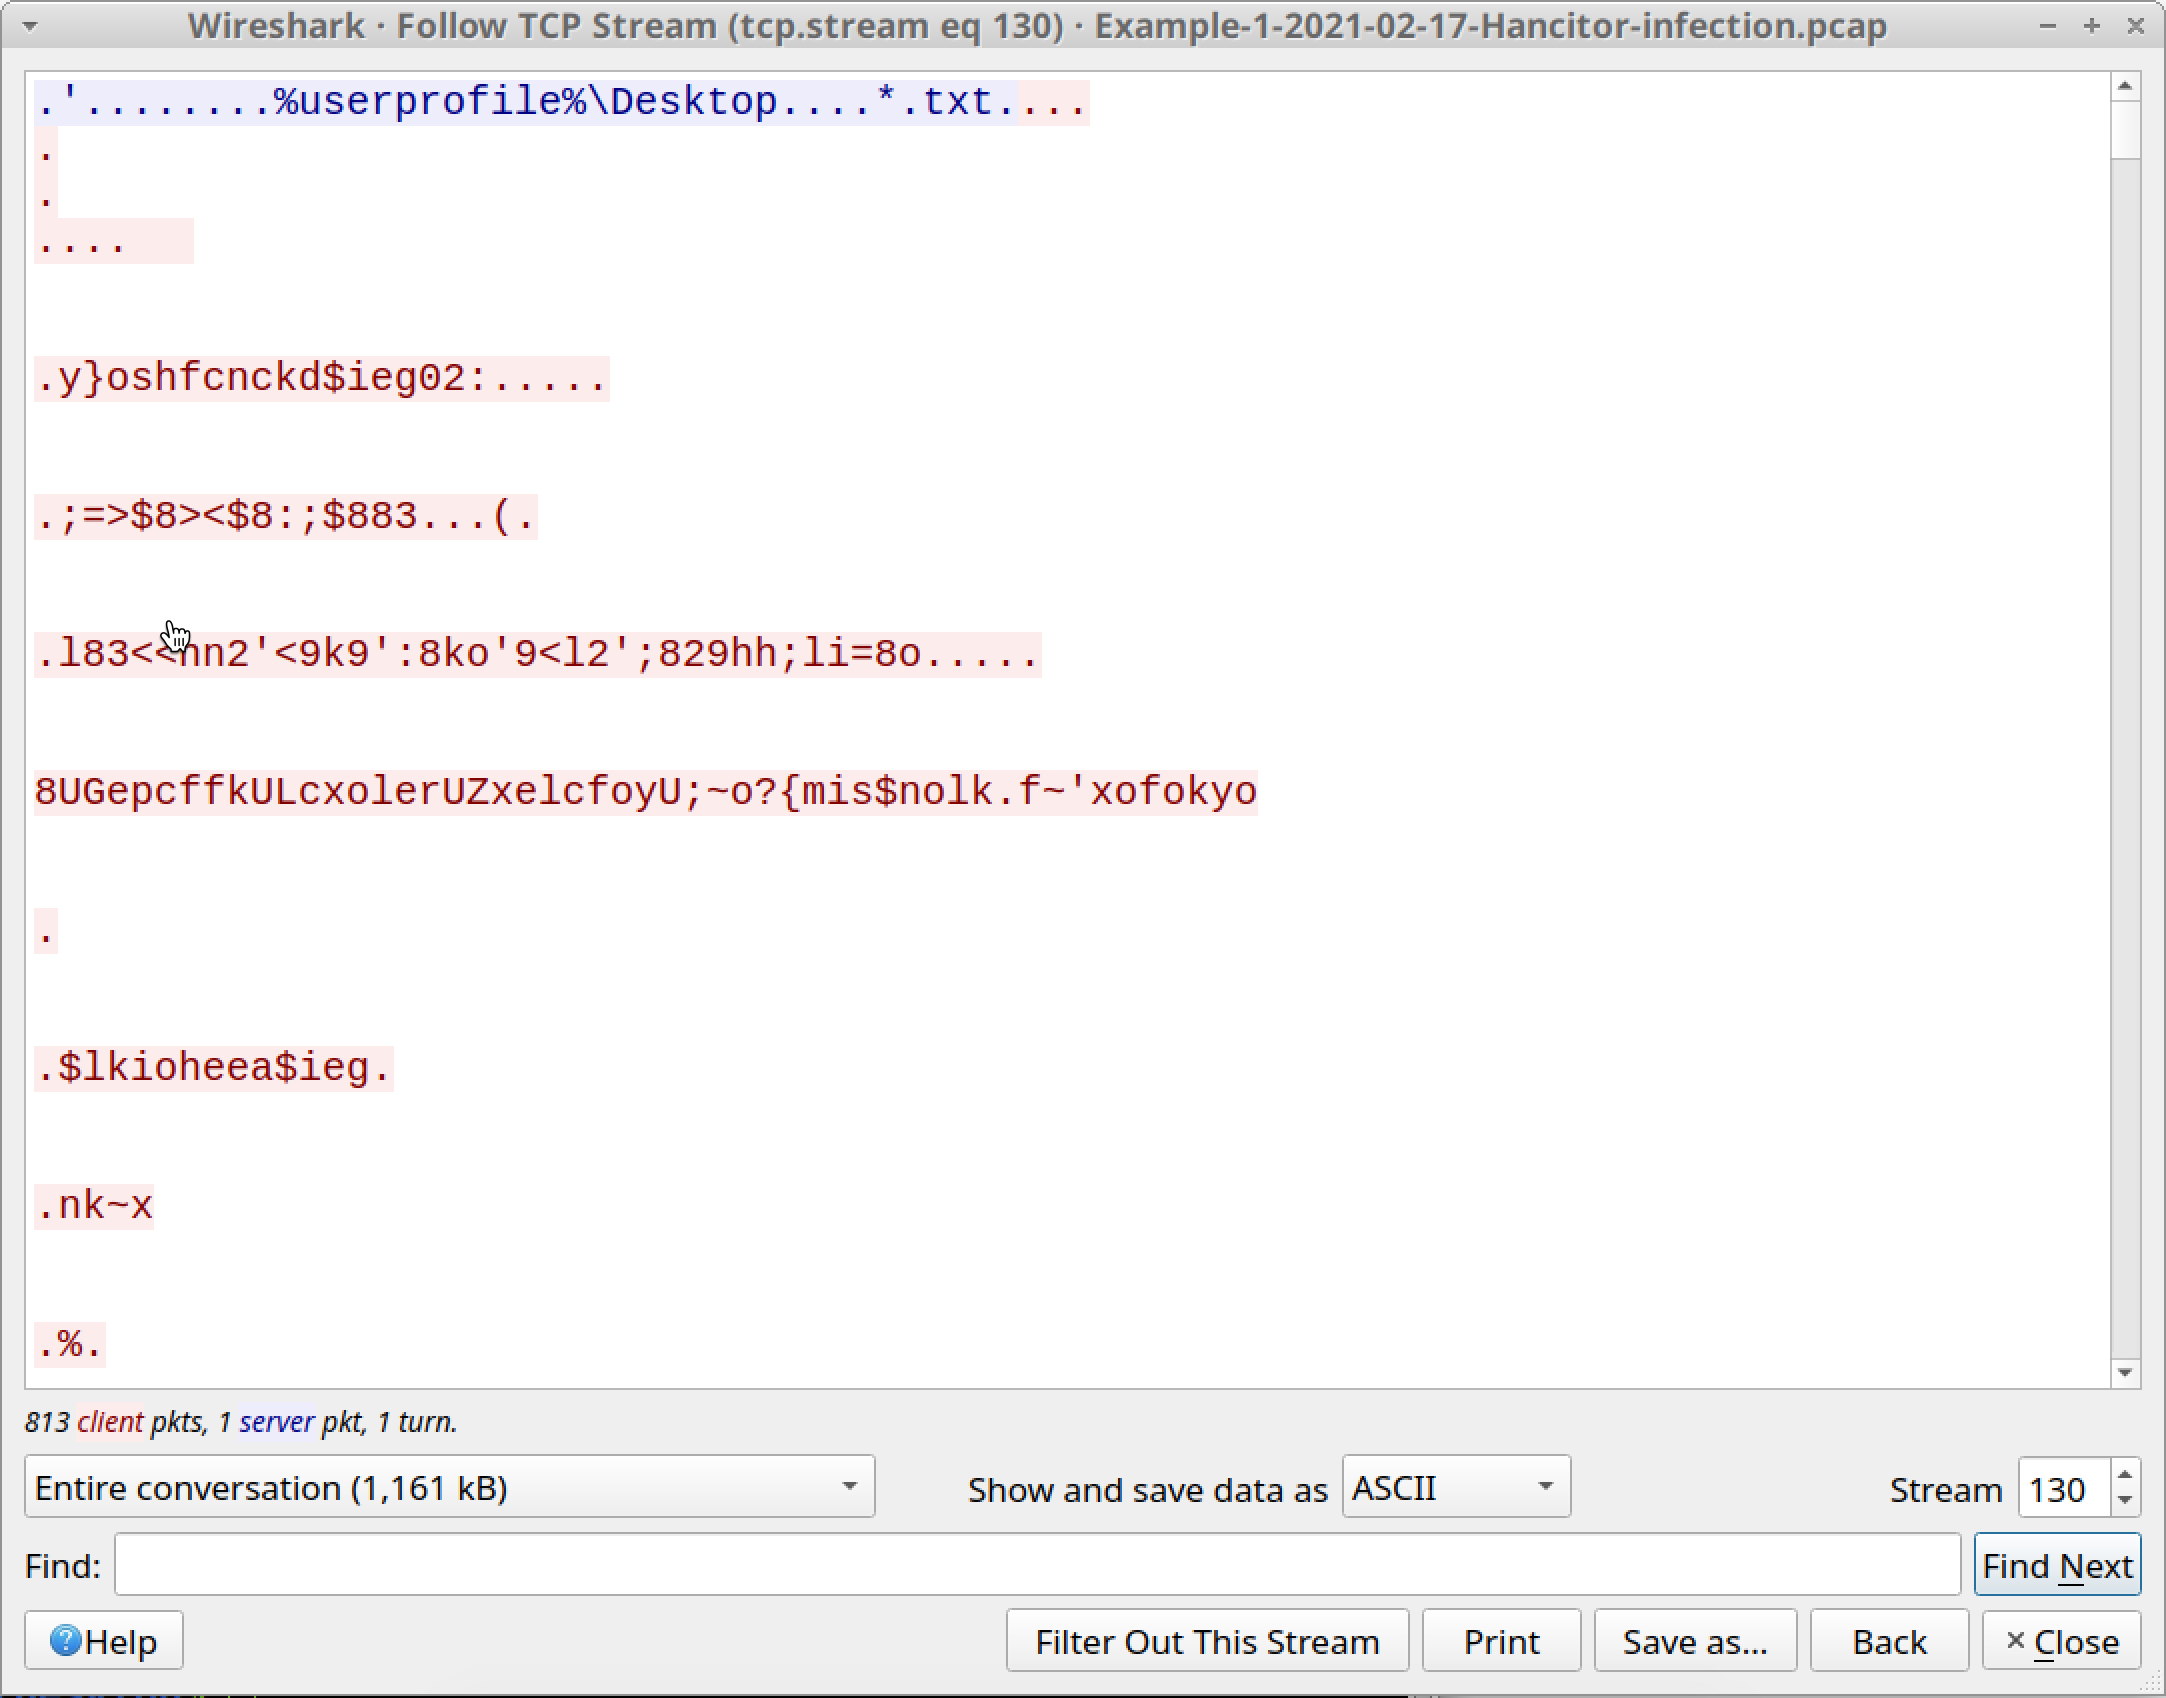 The screenshot shows how the majority of data from the TCP stream appears encoded or otherwise obfuscated.